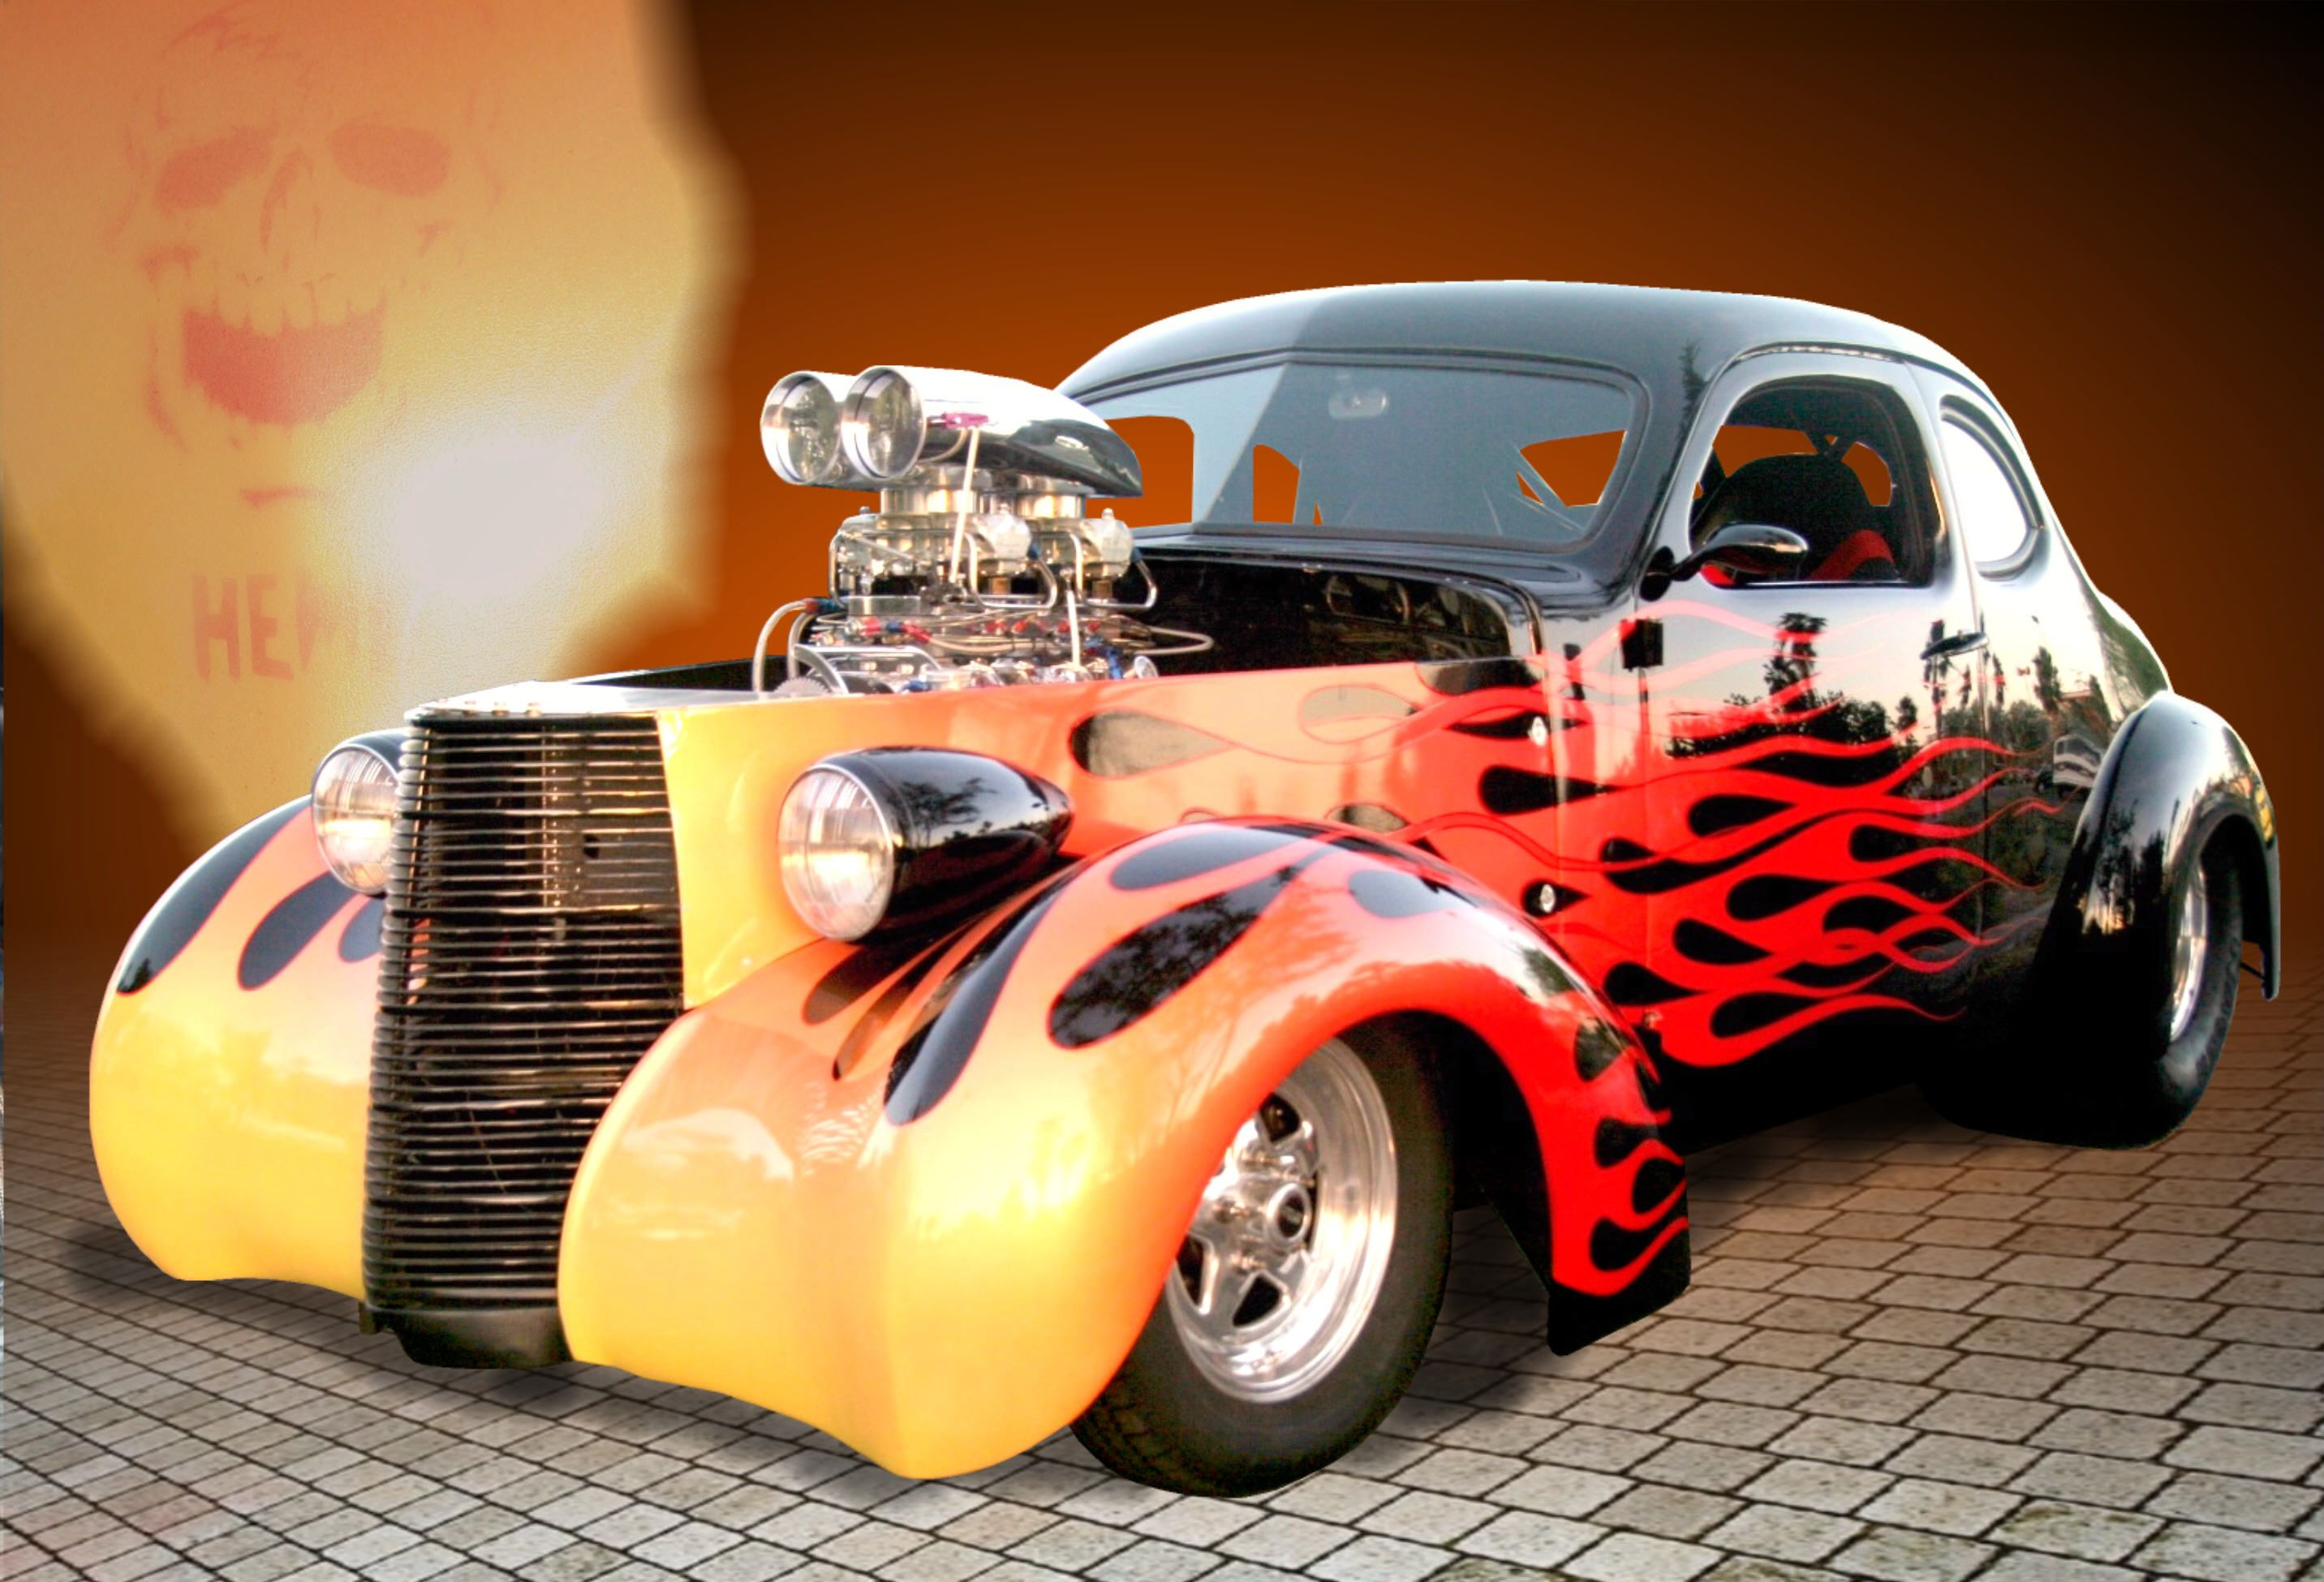 Hot Rod Cars Wallpaper Images Hot Rods Cars Hot Rods Hot Cars